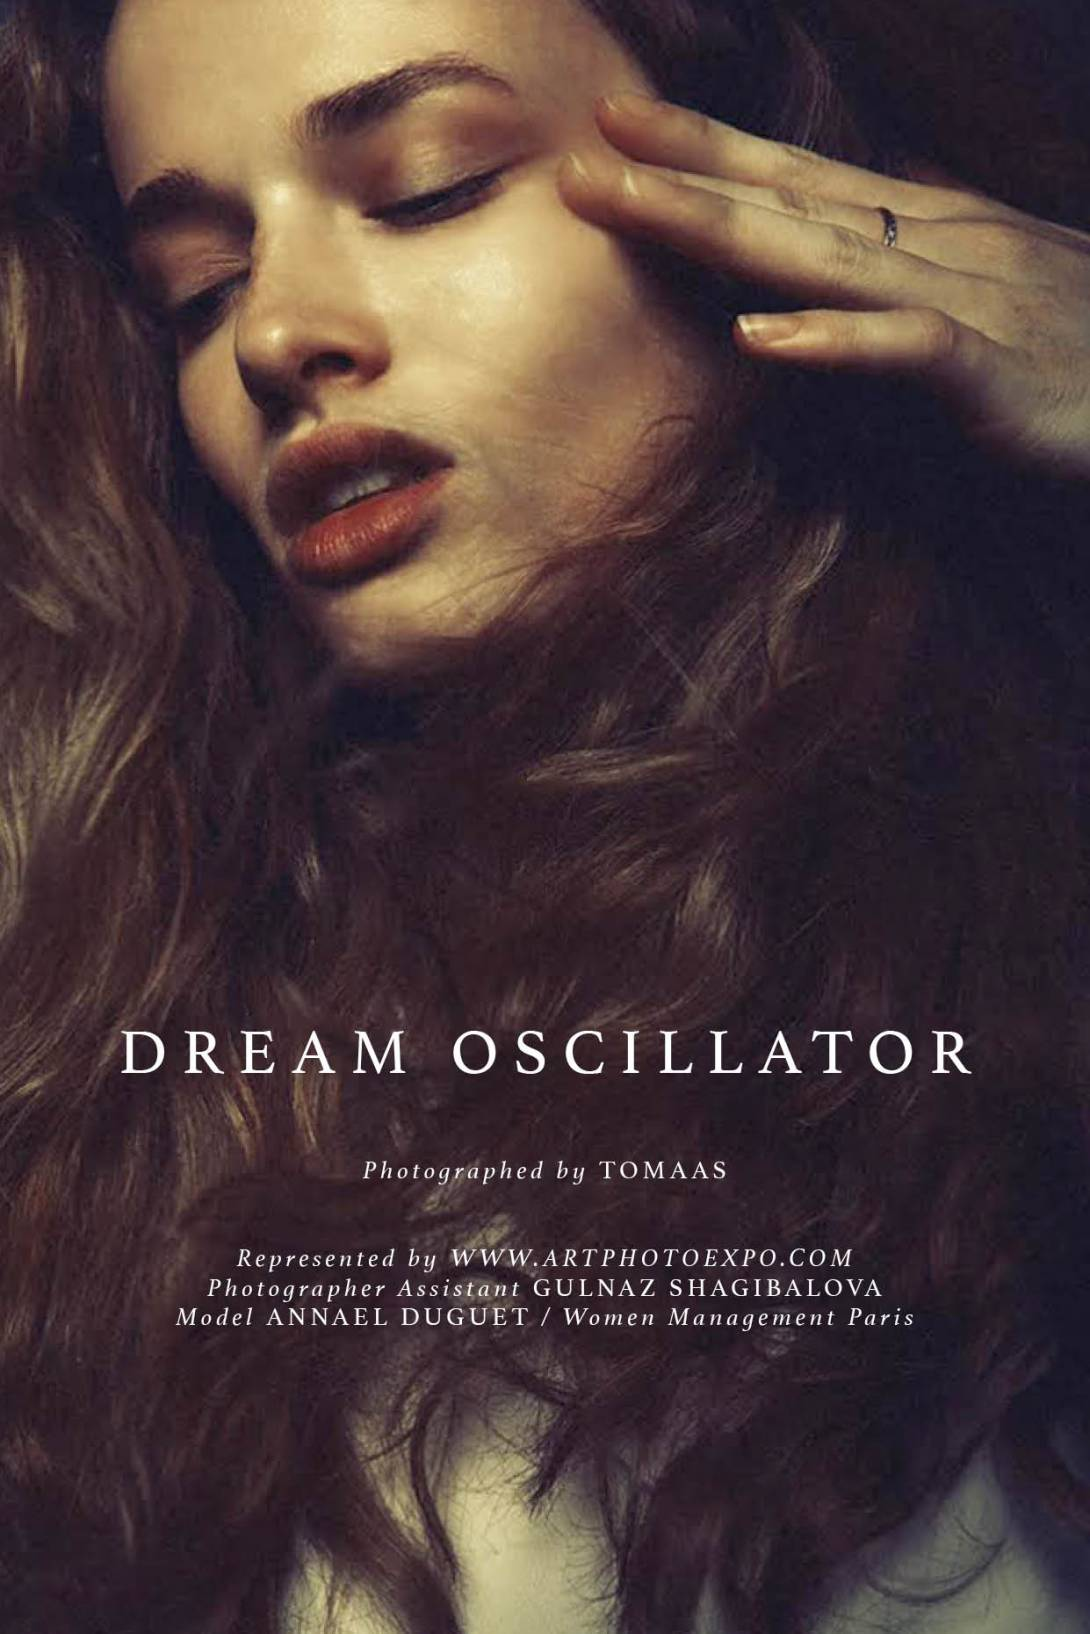 Dream Oscillator